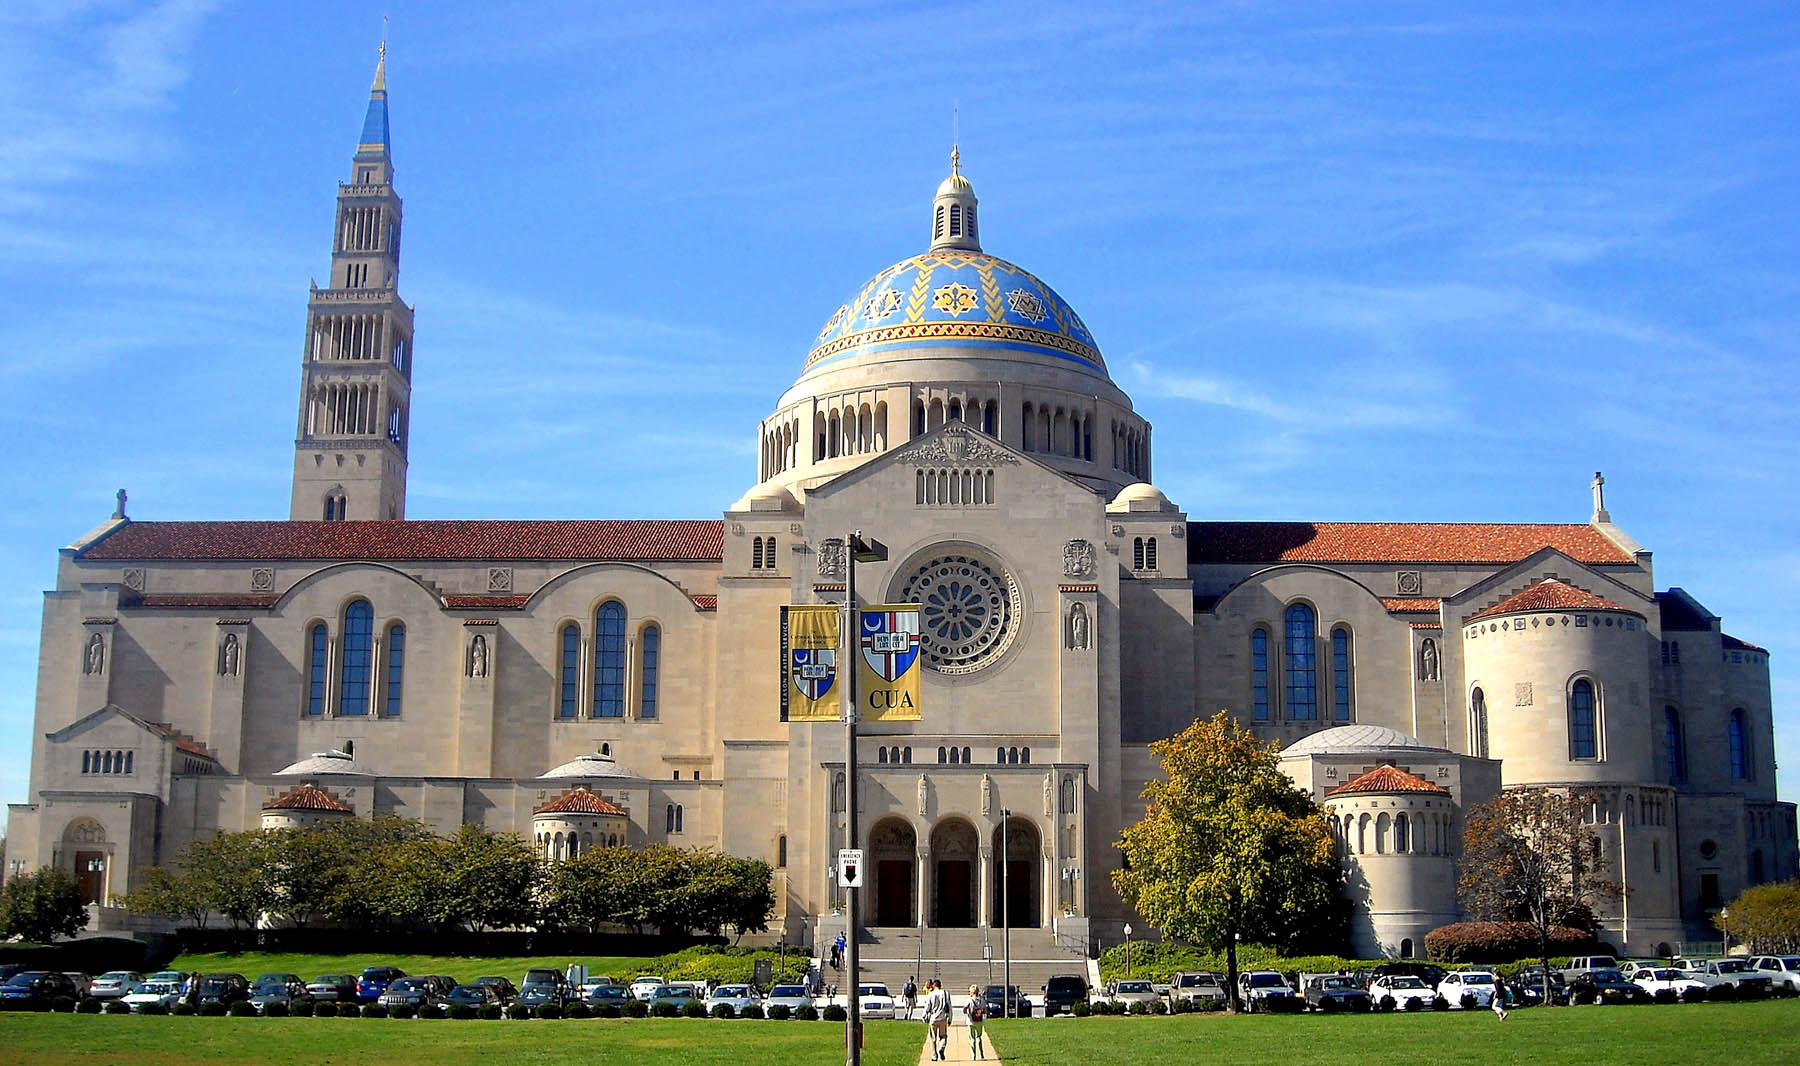 Basilica_of_the_National_Shrine_of_the_Immaculate_Conception